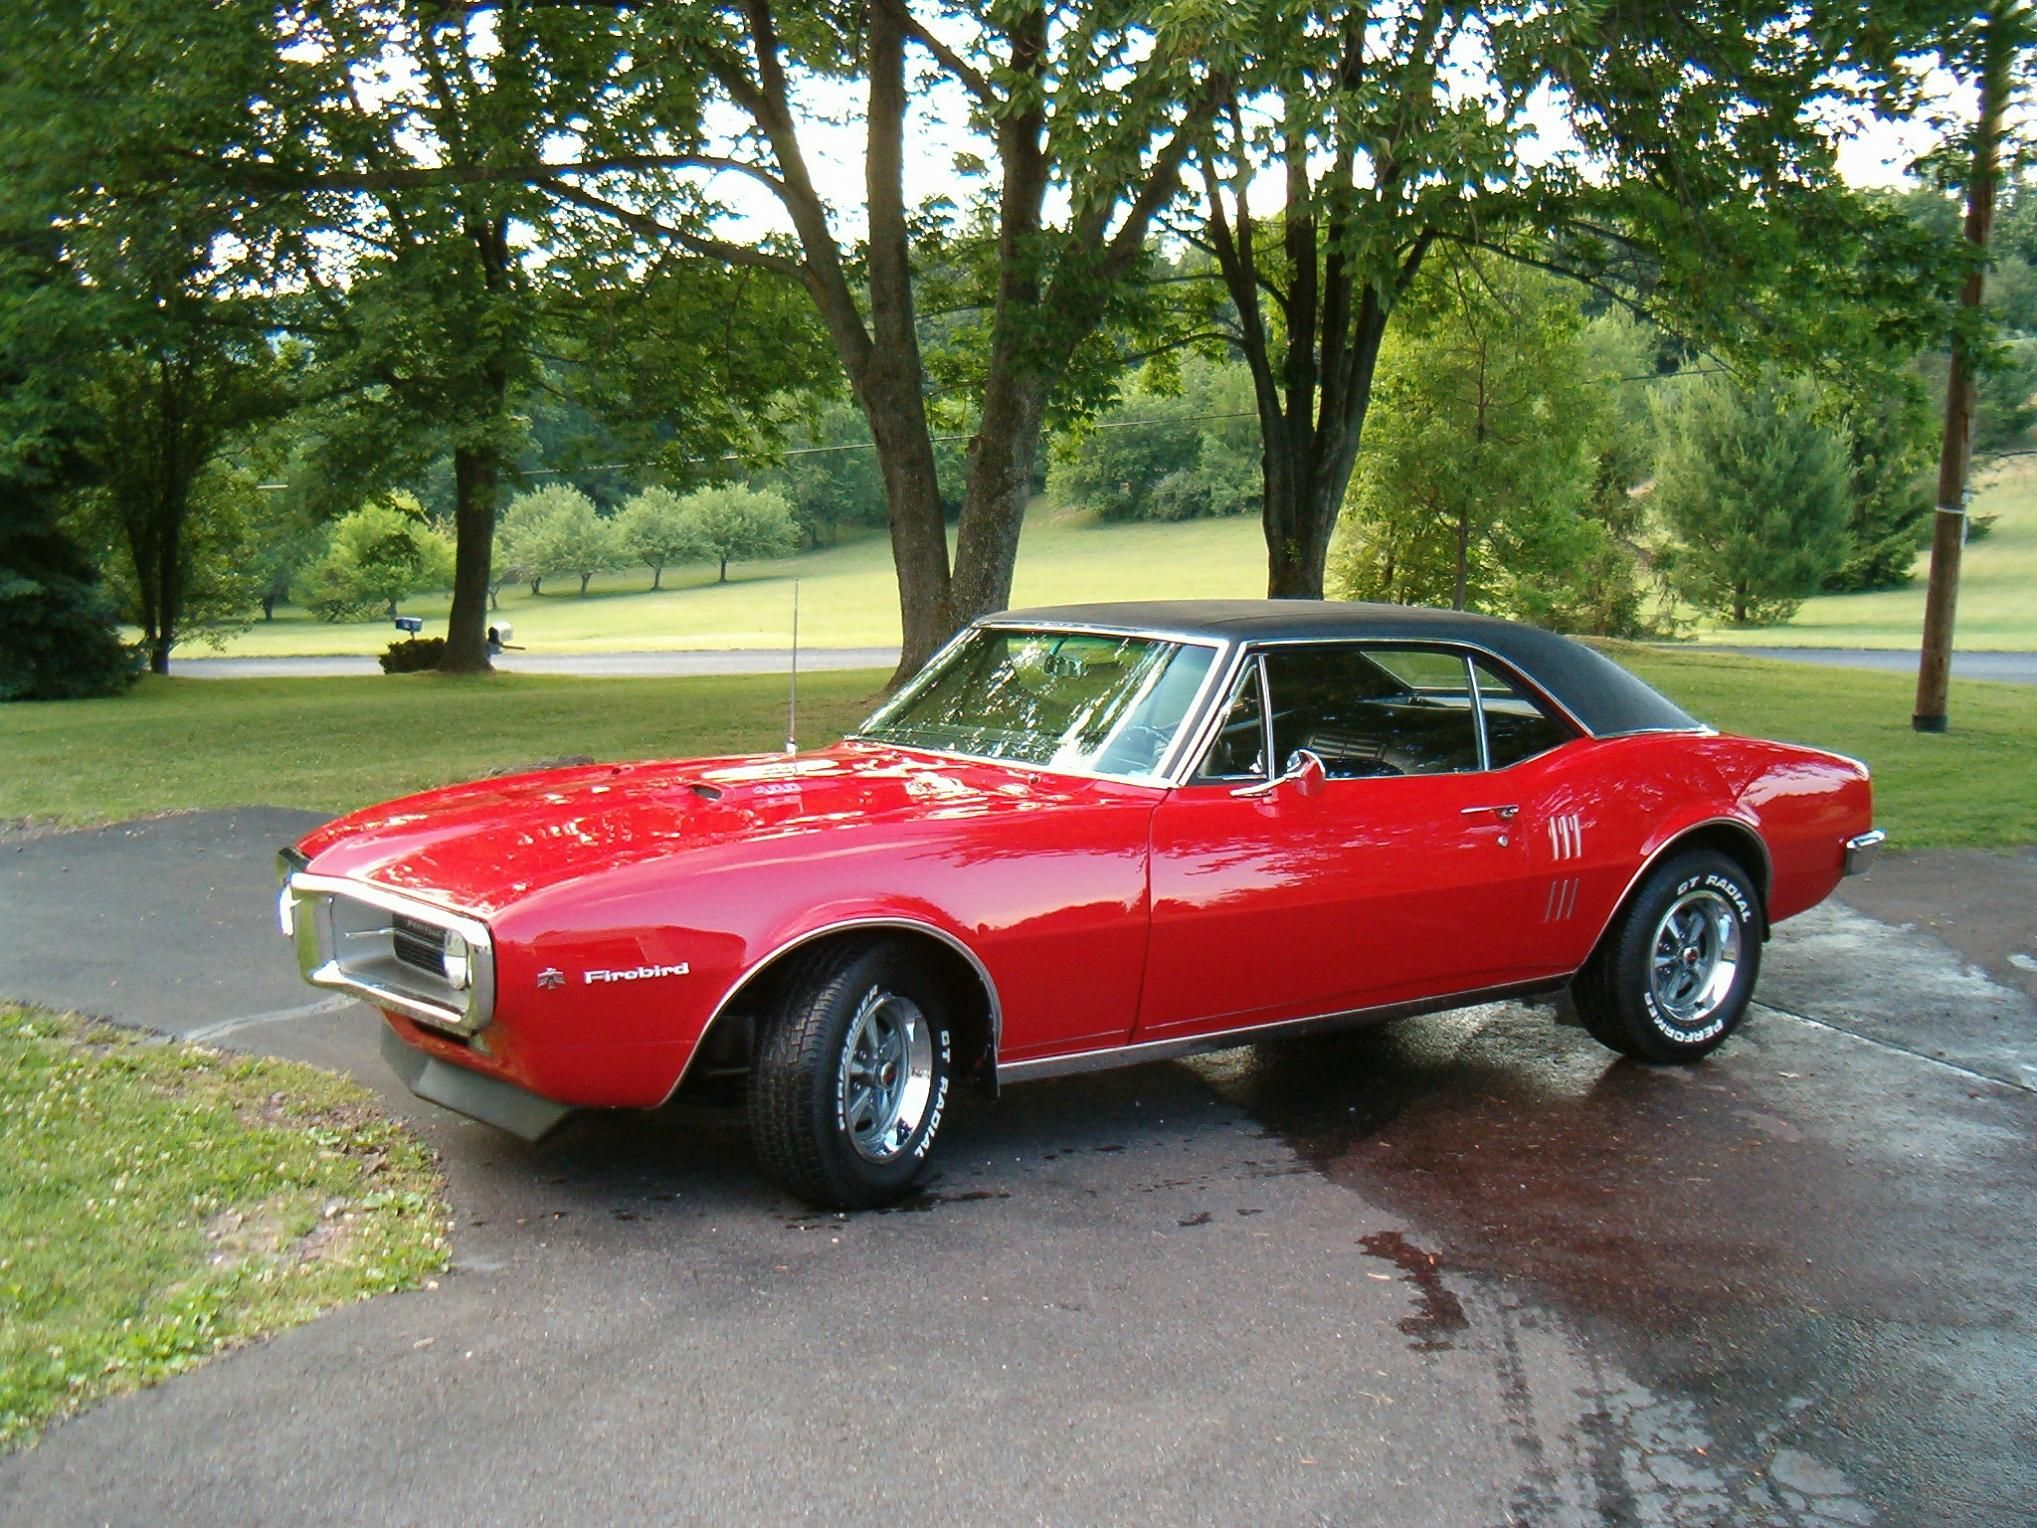 1967 firebird - The first car I got to drive as a 16 year old young ...